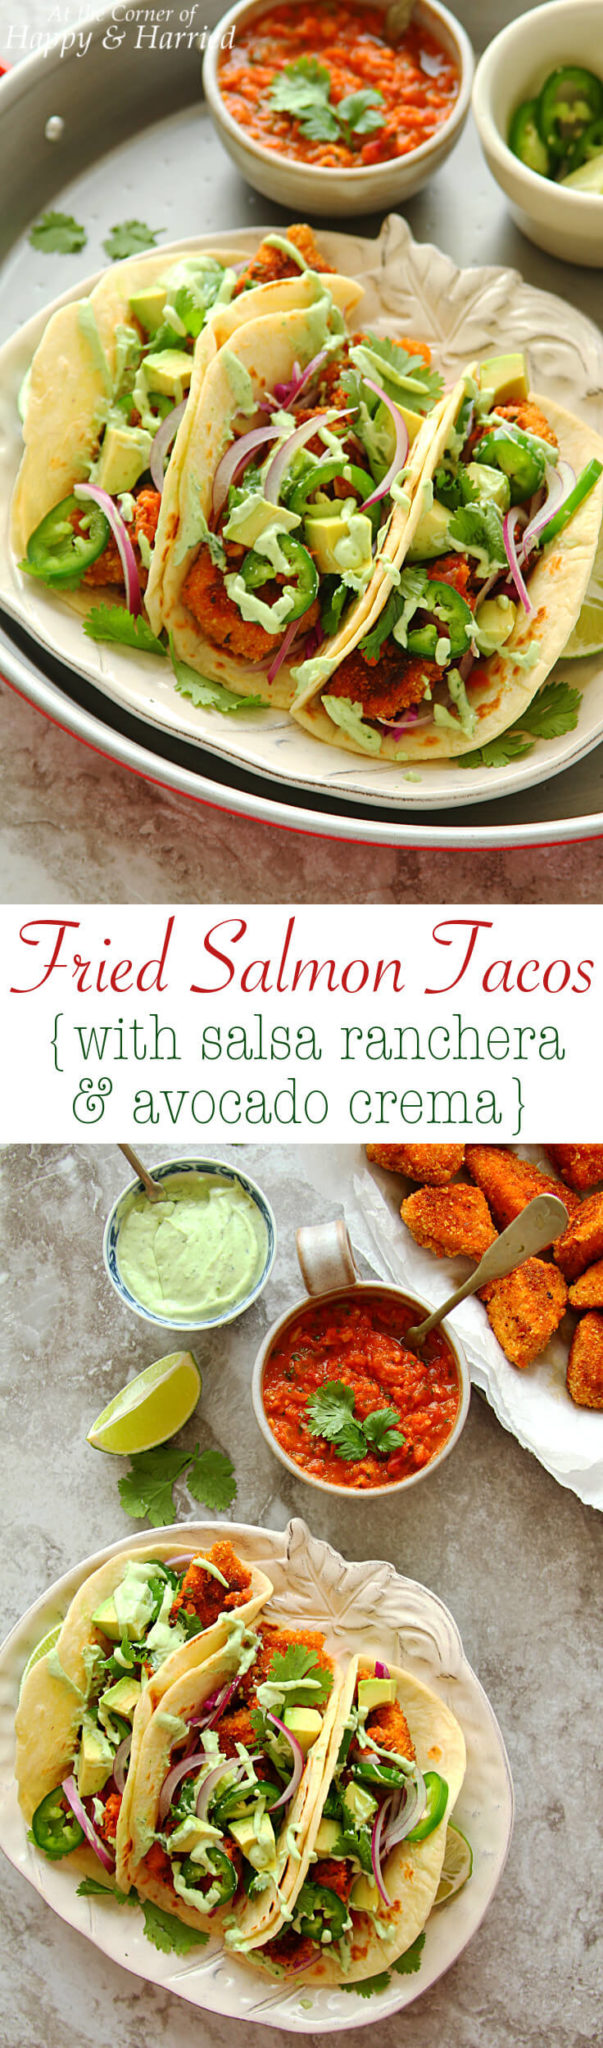 FRIED SALMON TACOS WITH SALSA RACHERA & AVOCADO CREMA - HAPPY&HARRIED